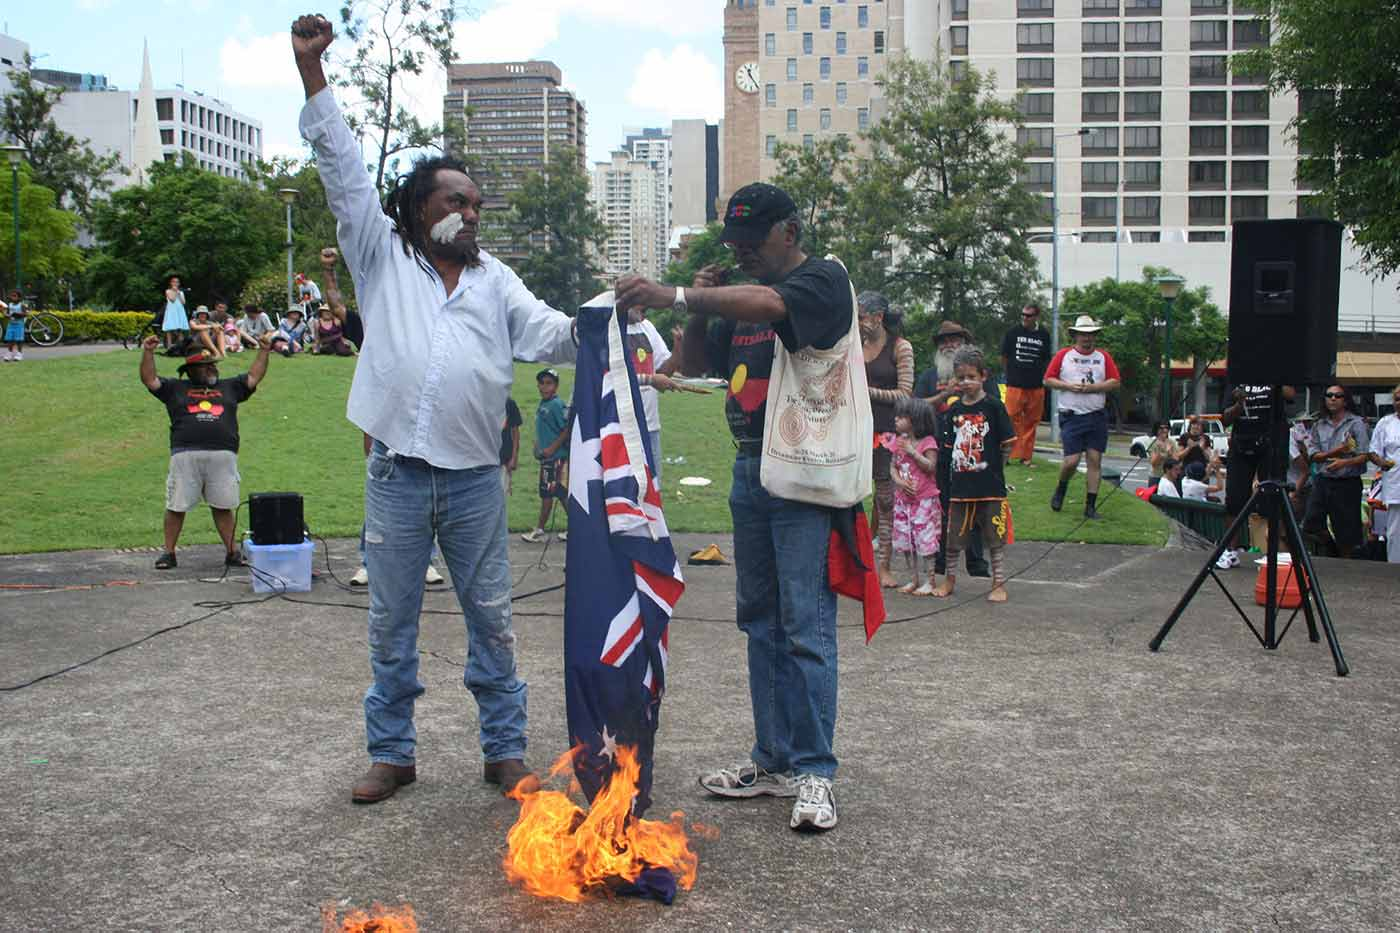 Colour photograph of two men holding the Australian flag over a fire while spectators look on. The man on the left has his right arm raised with closed fist. - click to view larger image